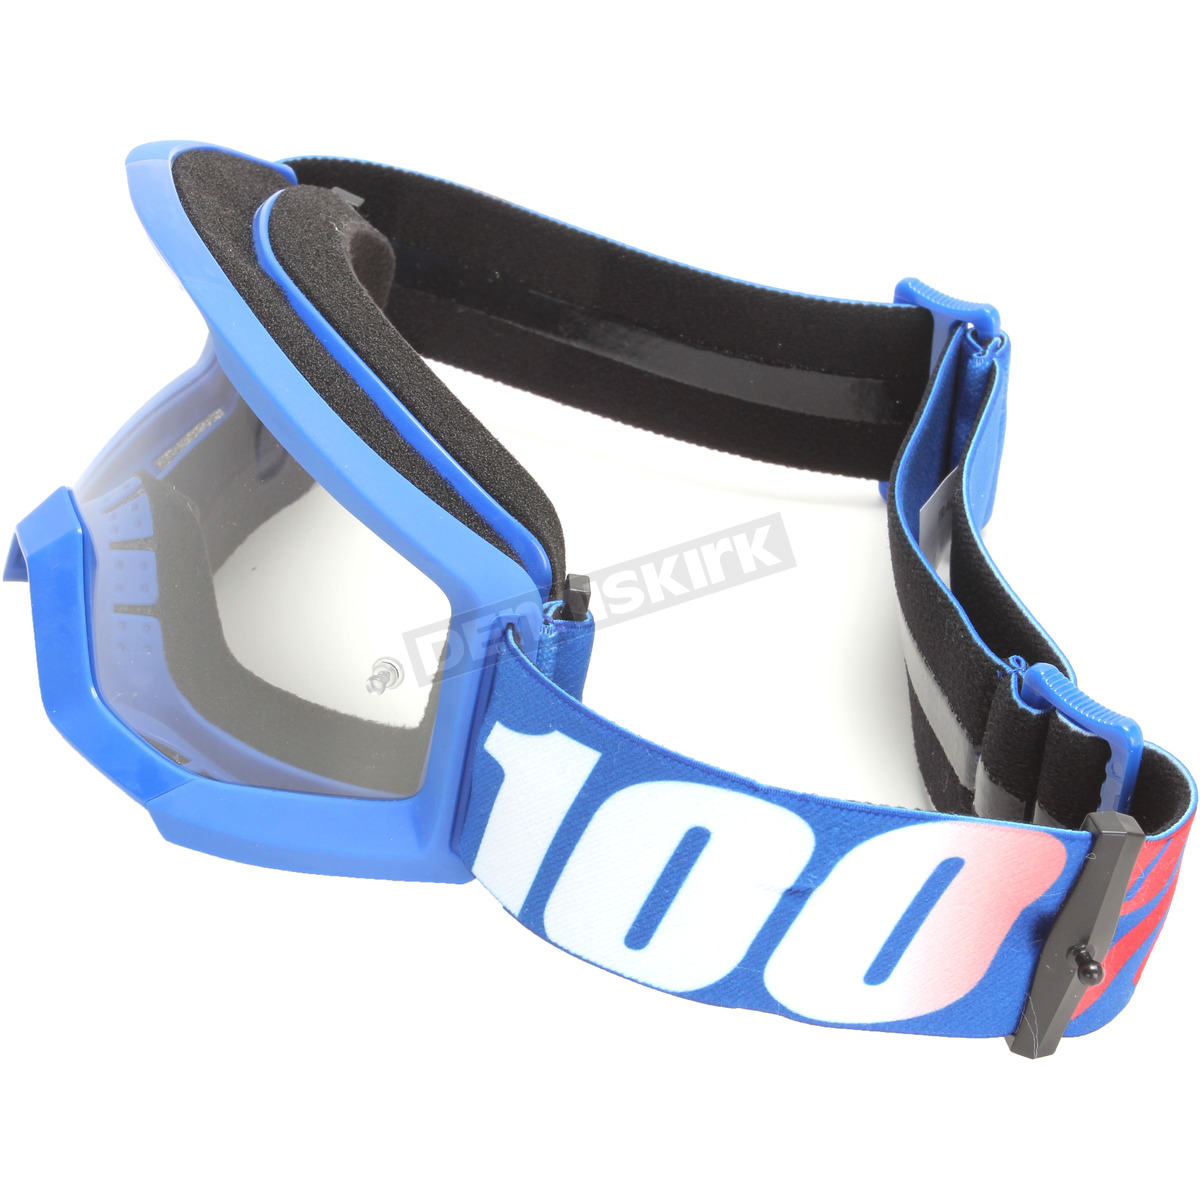 100/% 50500-236-02 Strata Youth Goggles Nation w//Clear Lens